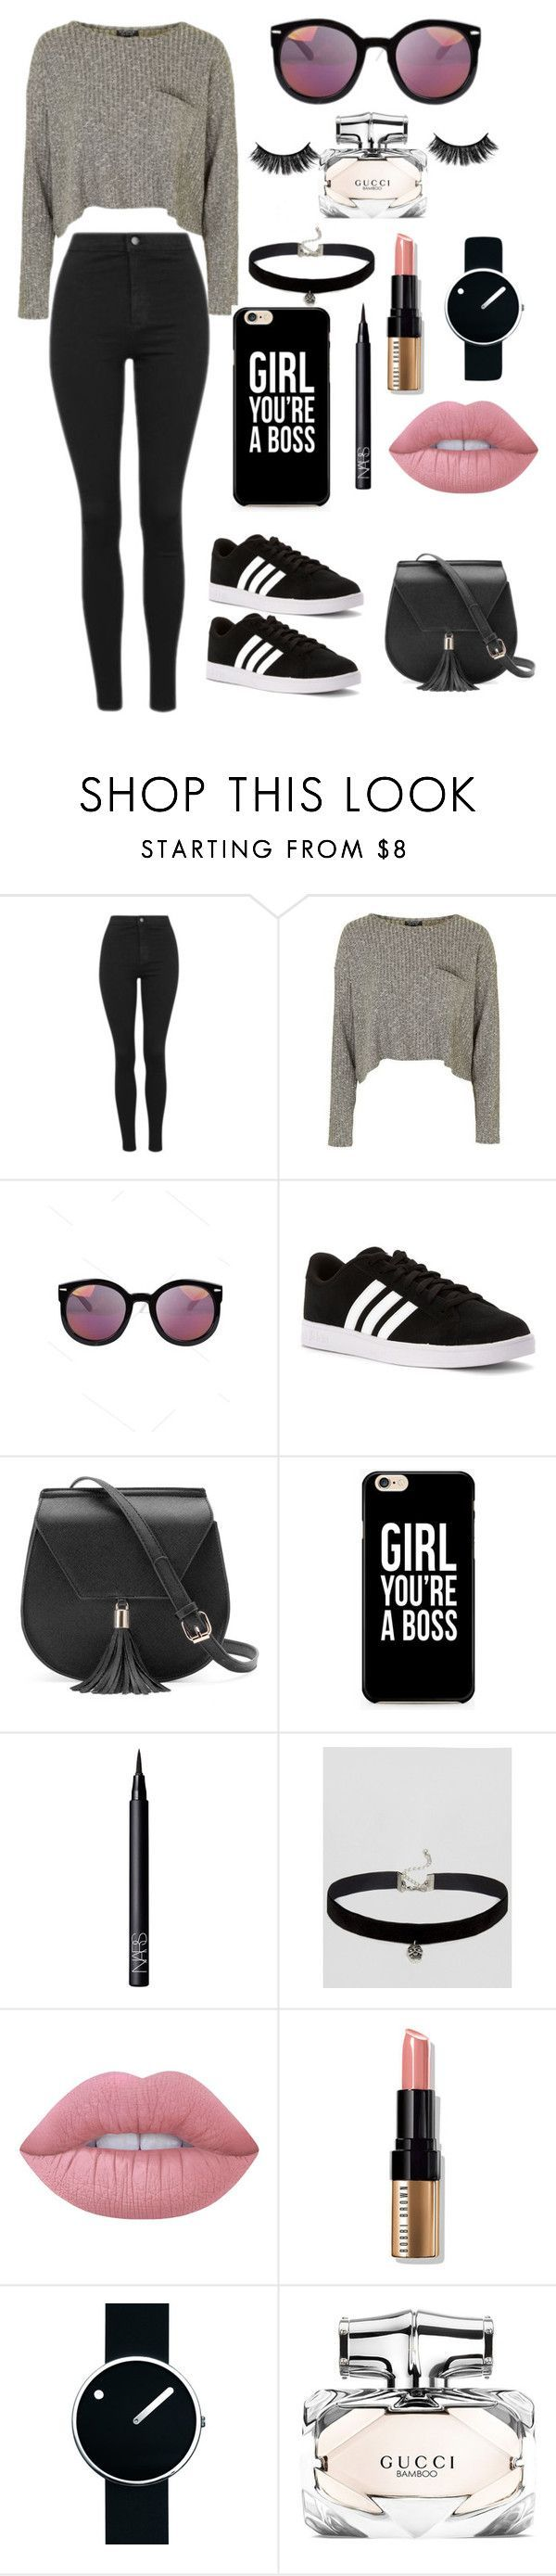 """""""Untitled #22"""" by polygirl109 ❤ liked on Polyvore featuring Topshop, adidas, Yoki, NARS Cosmetics, ASOS, Lime Crime, Bobbi Brown Cosmetics, Rosendahl and Gucci"""